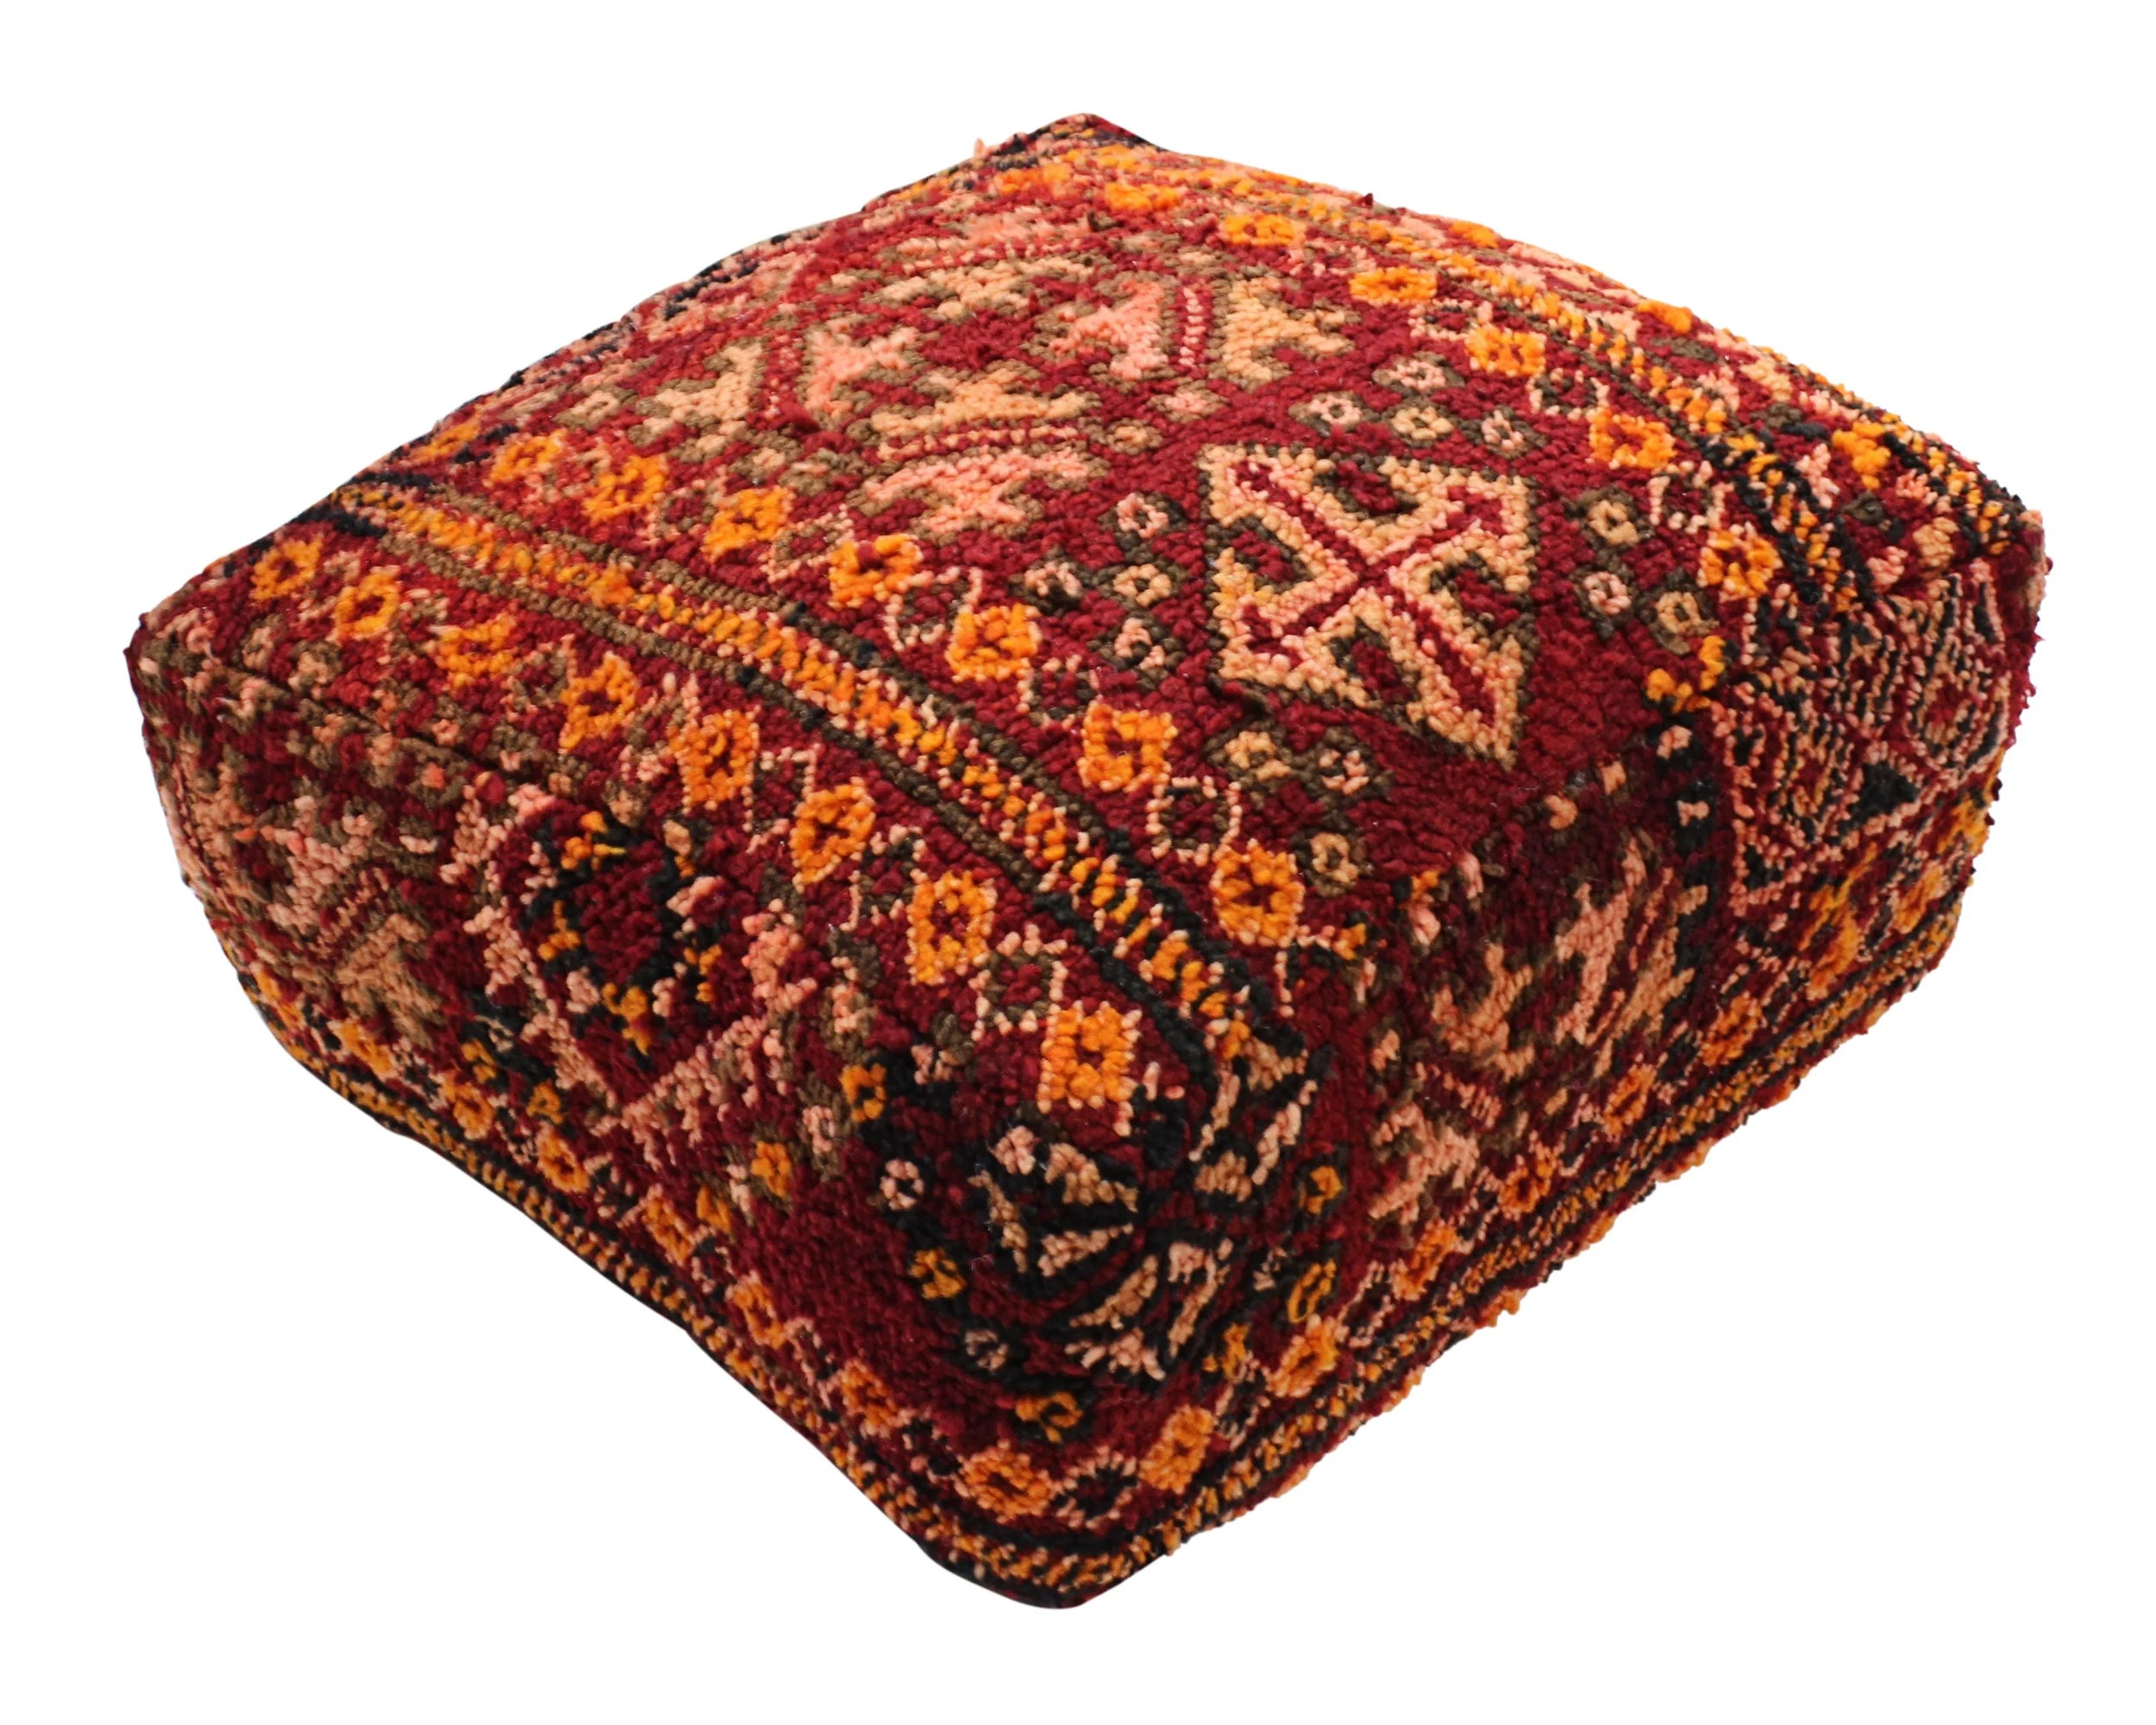 Pouf Xl Moroccan Rug Carpet Pouf Pouffe Footrest Footstool Xl Floor Cushion Pillow Cover Handmade In Morocco 60x60x25cm 24 X24 X10 Kp204